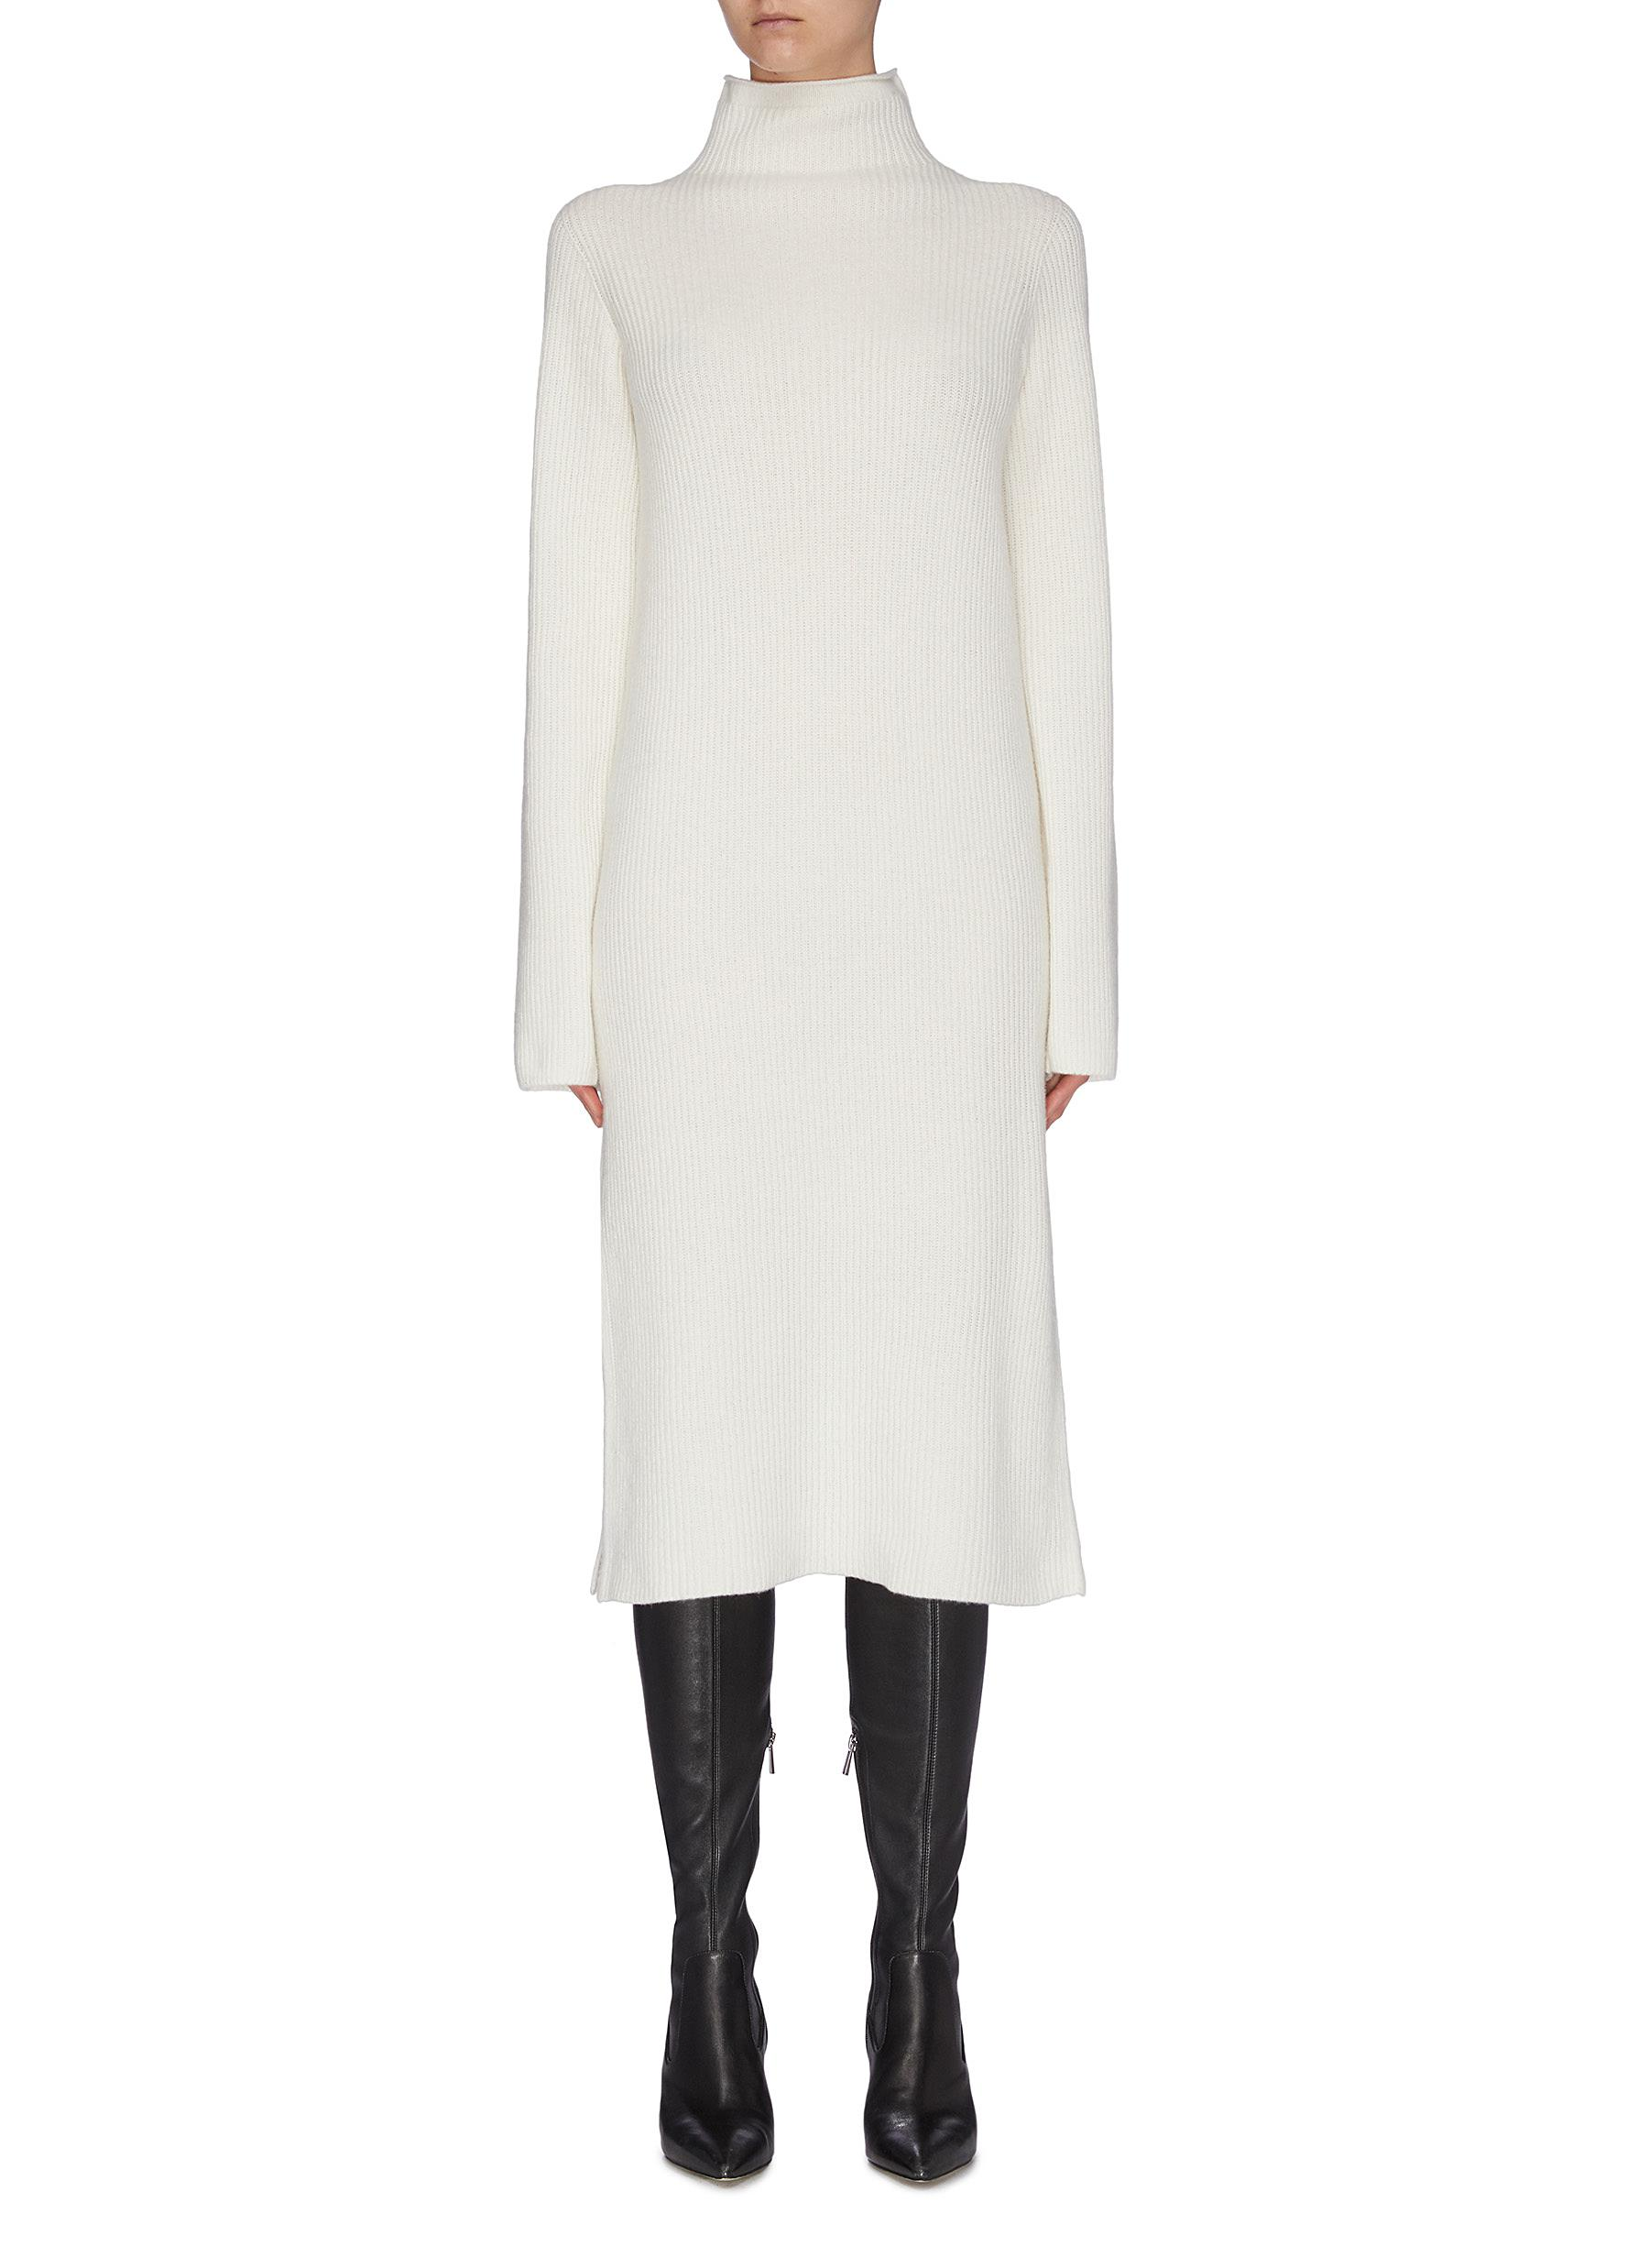 Buy The Row Dresses 'Moa' high neck wool-cashmere rib knit dress